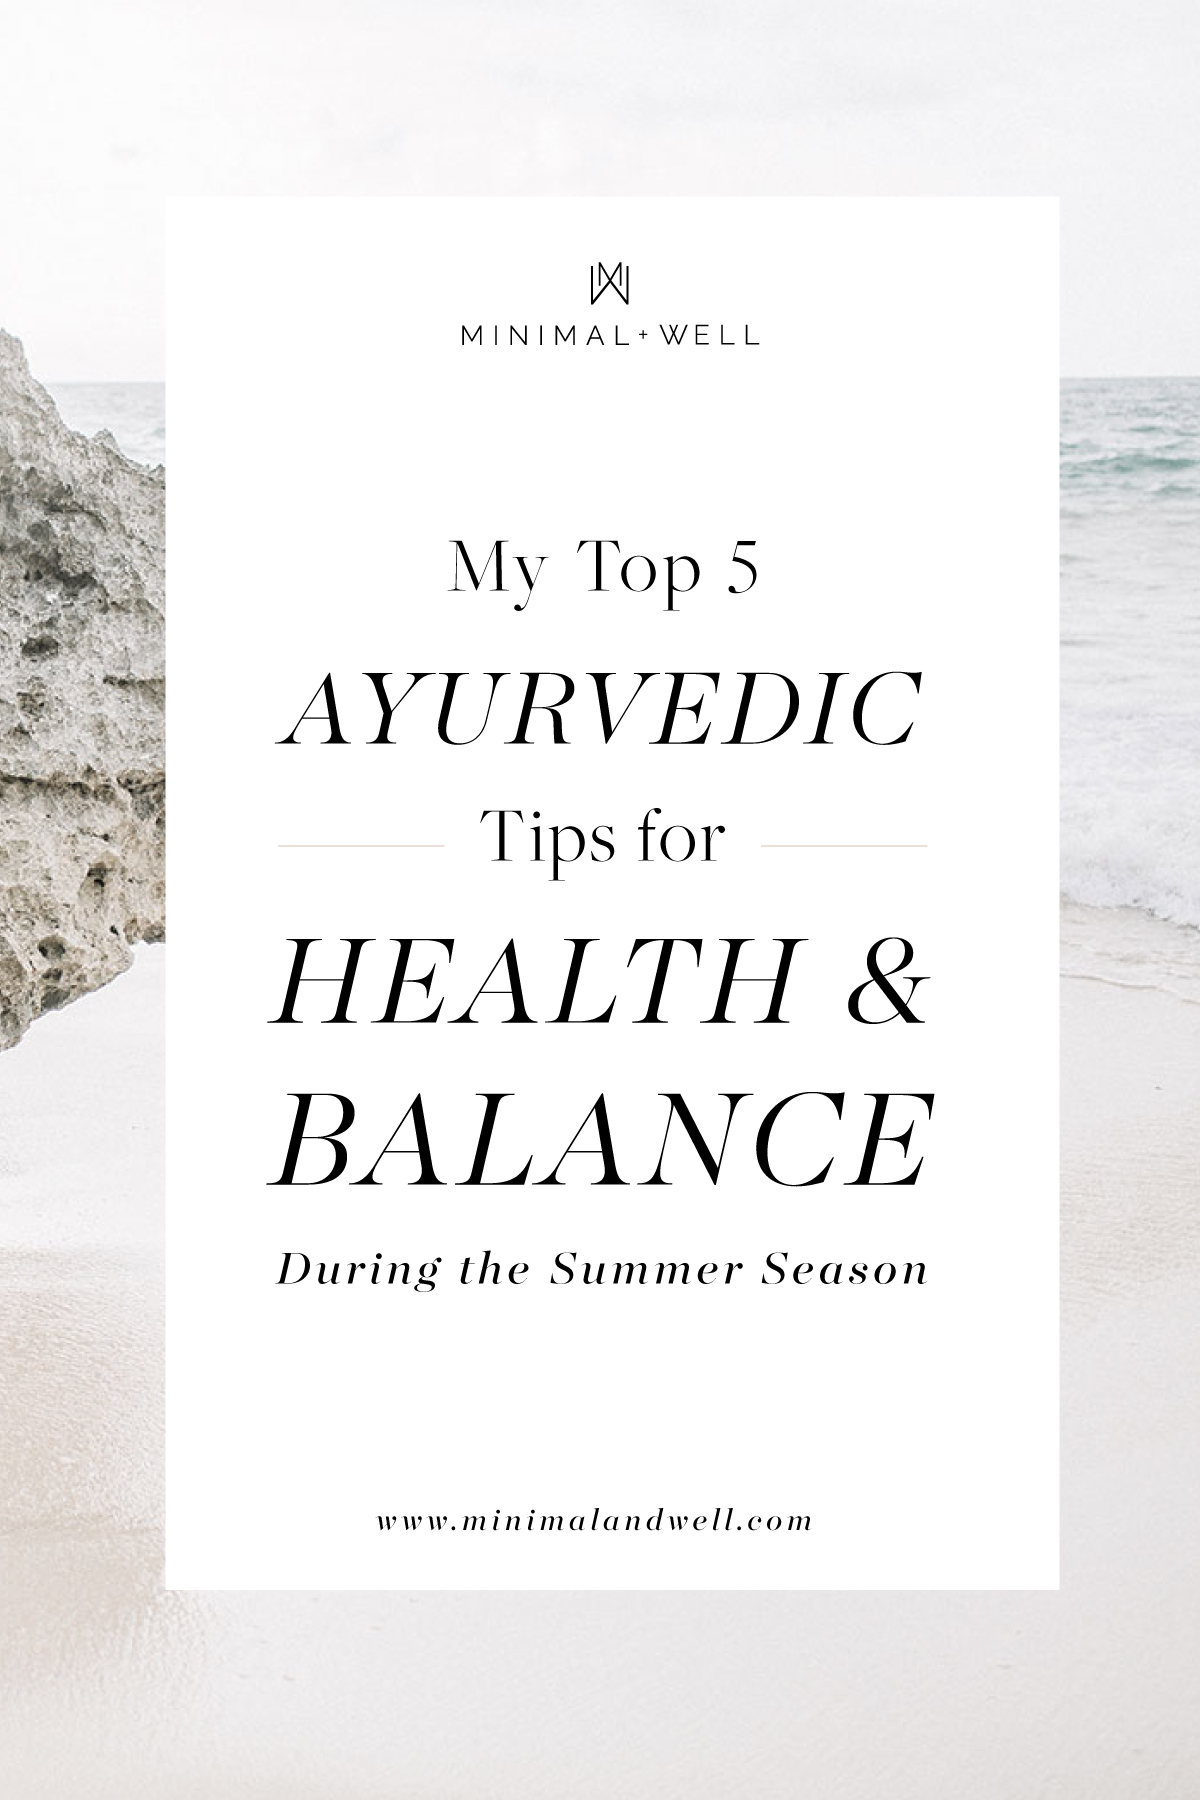 my-top-five-ayurvedic-tips-for-staying-healthy-and-balanced-in-the-summer-by-minimal-and-well.jpg